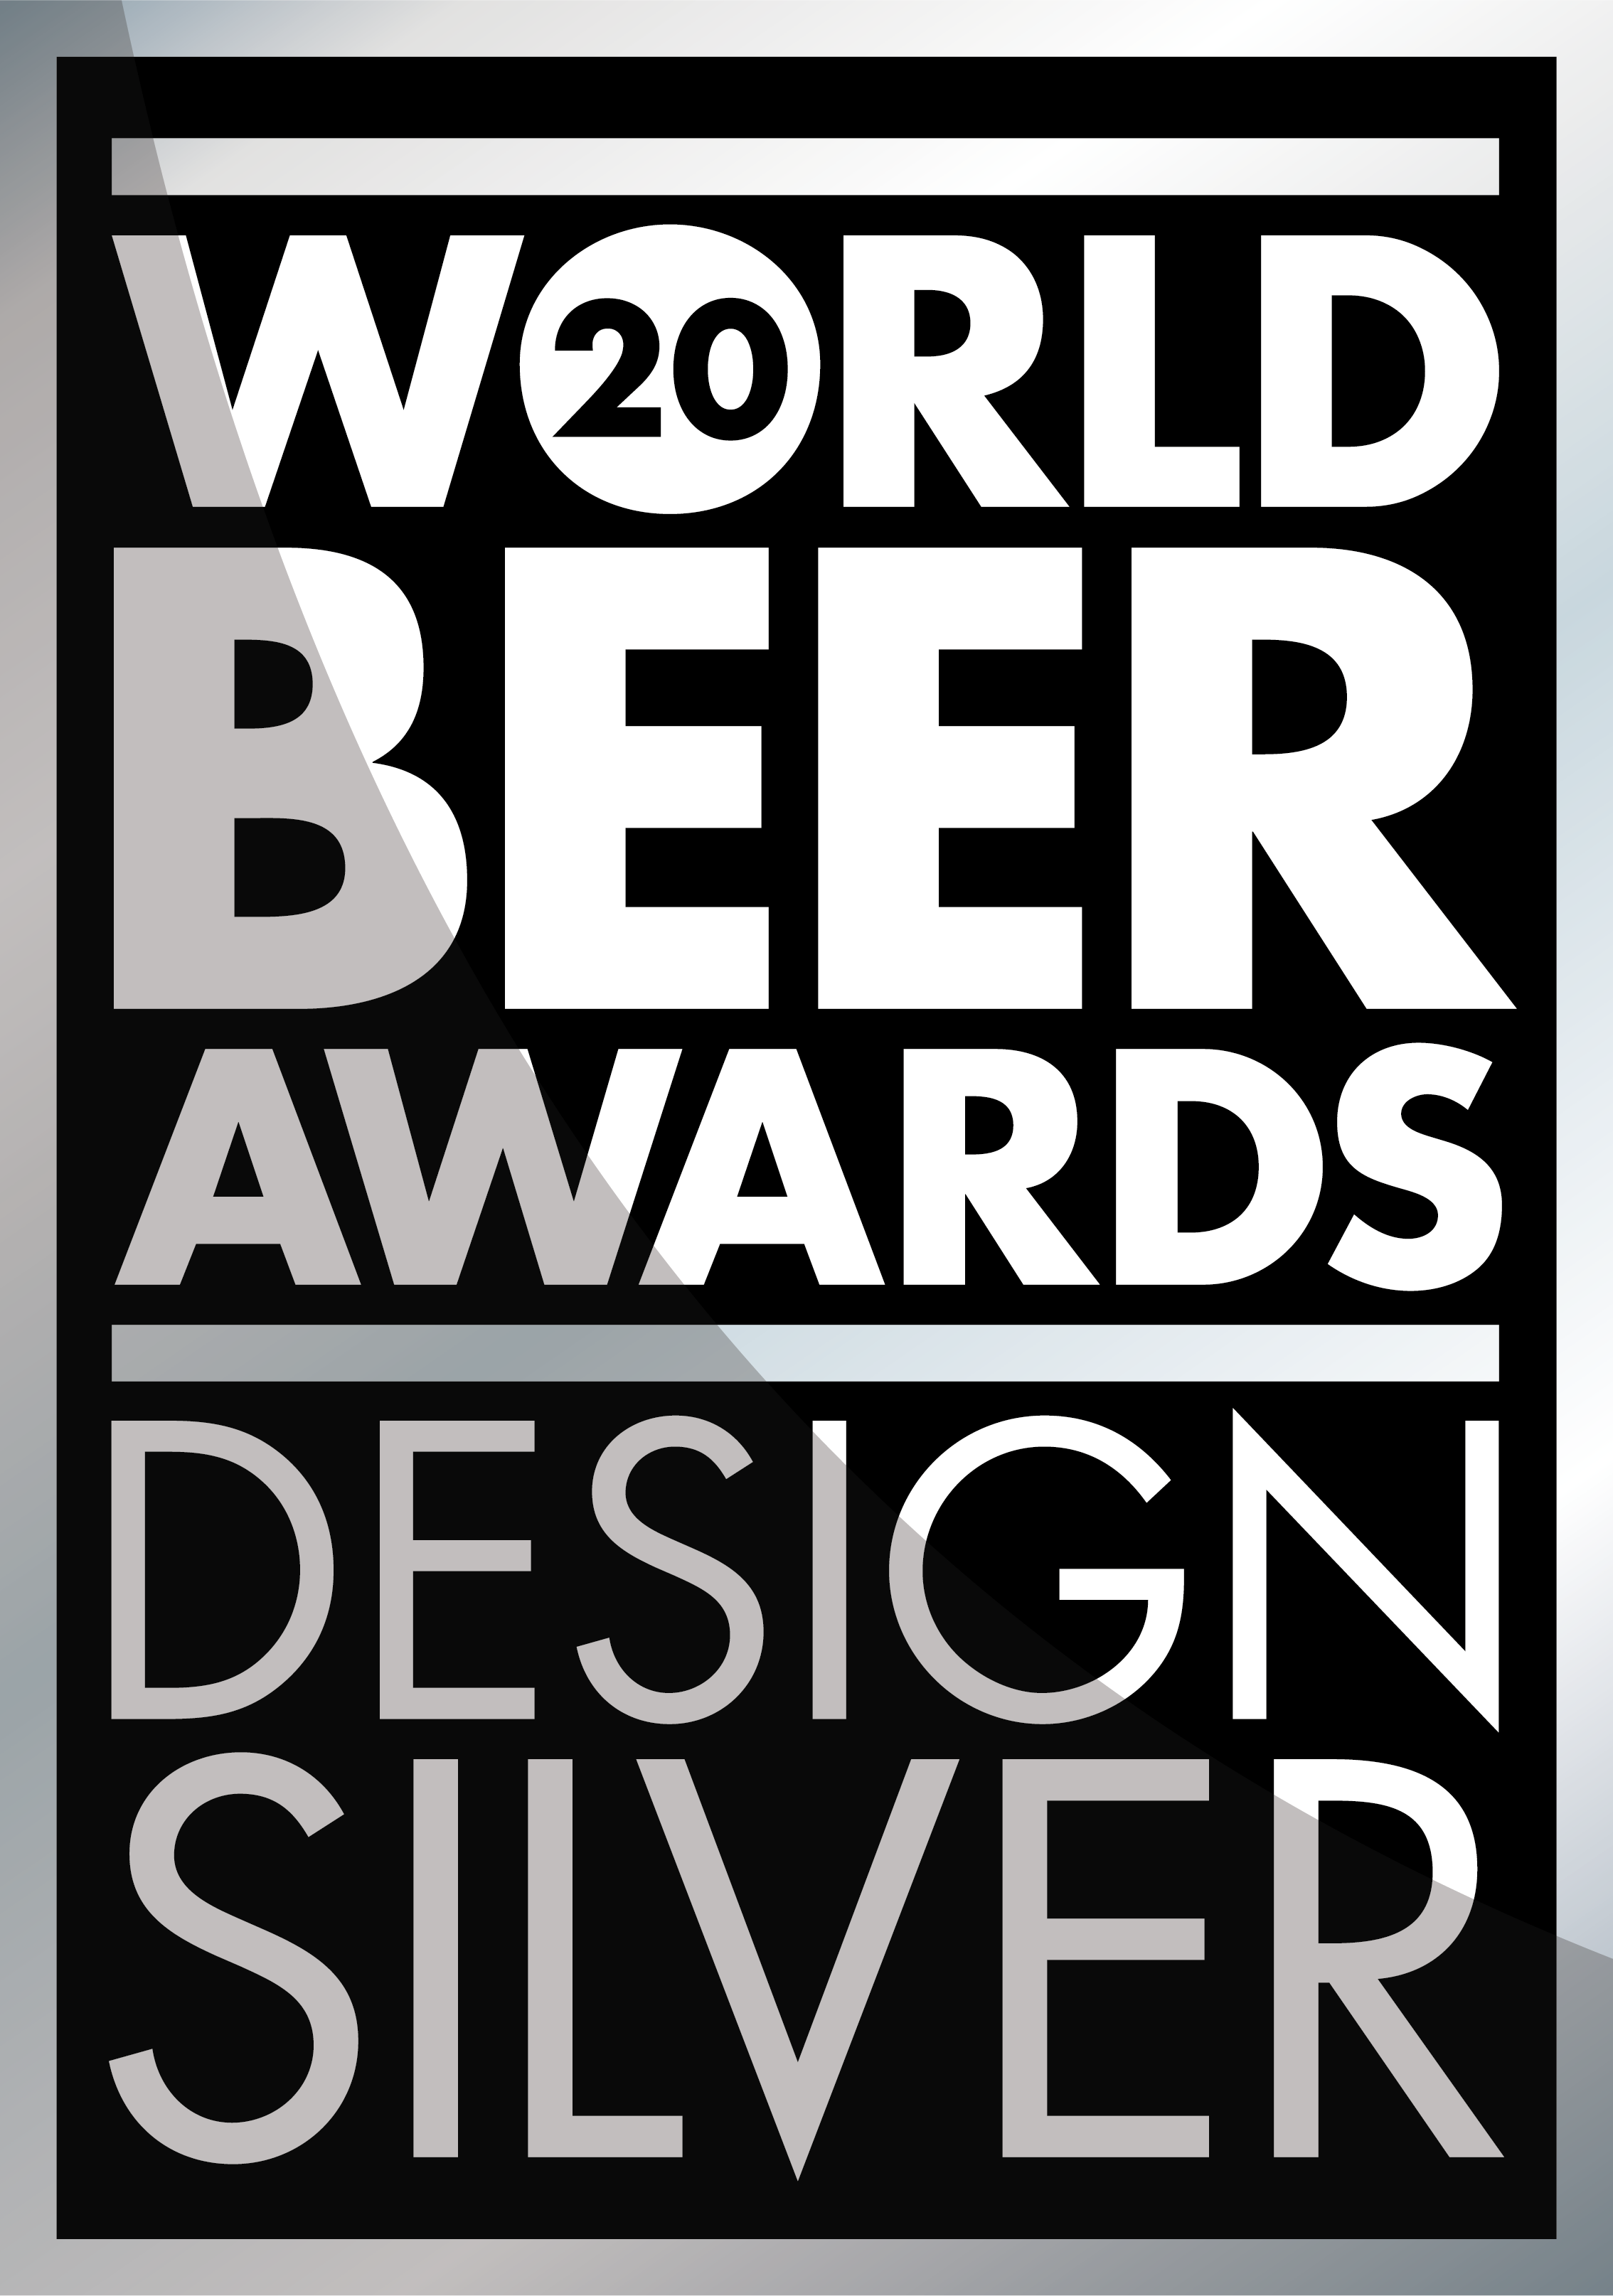 World Beer Awards Silver